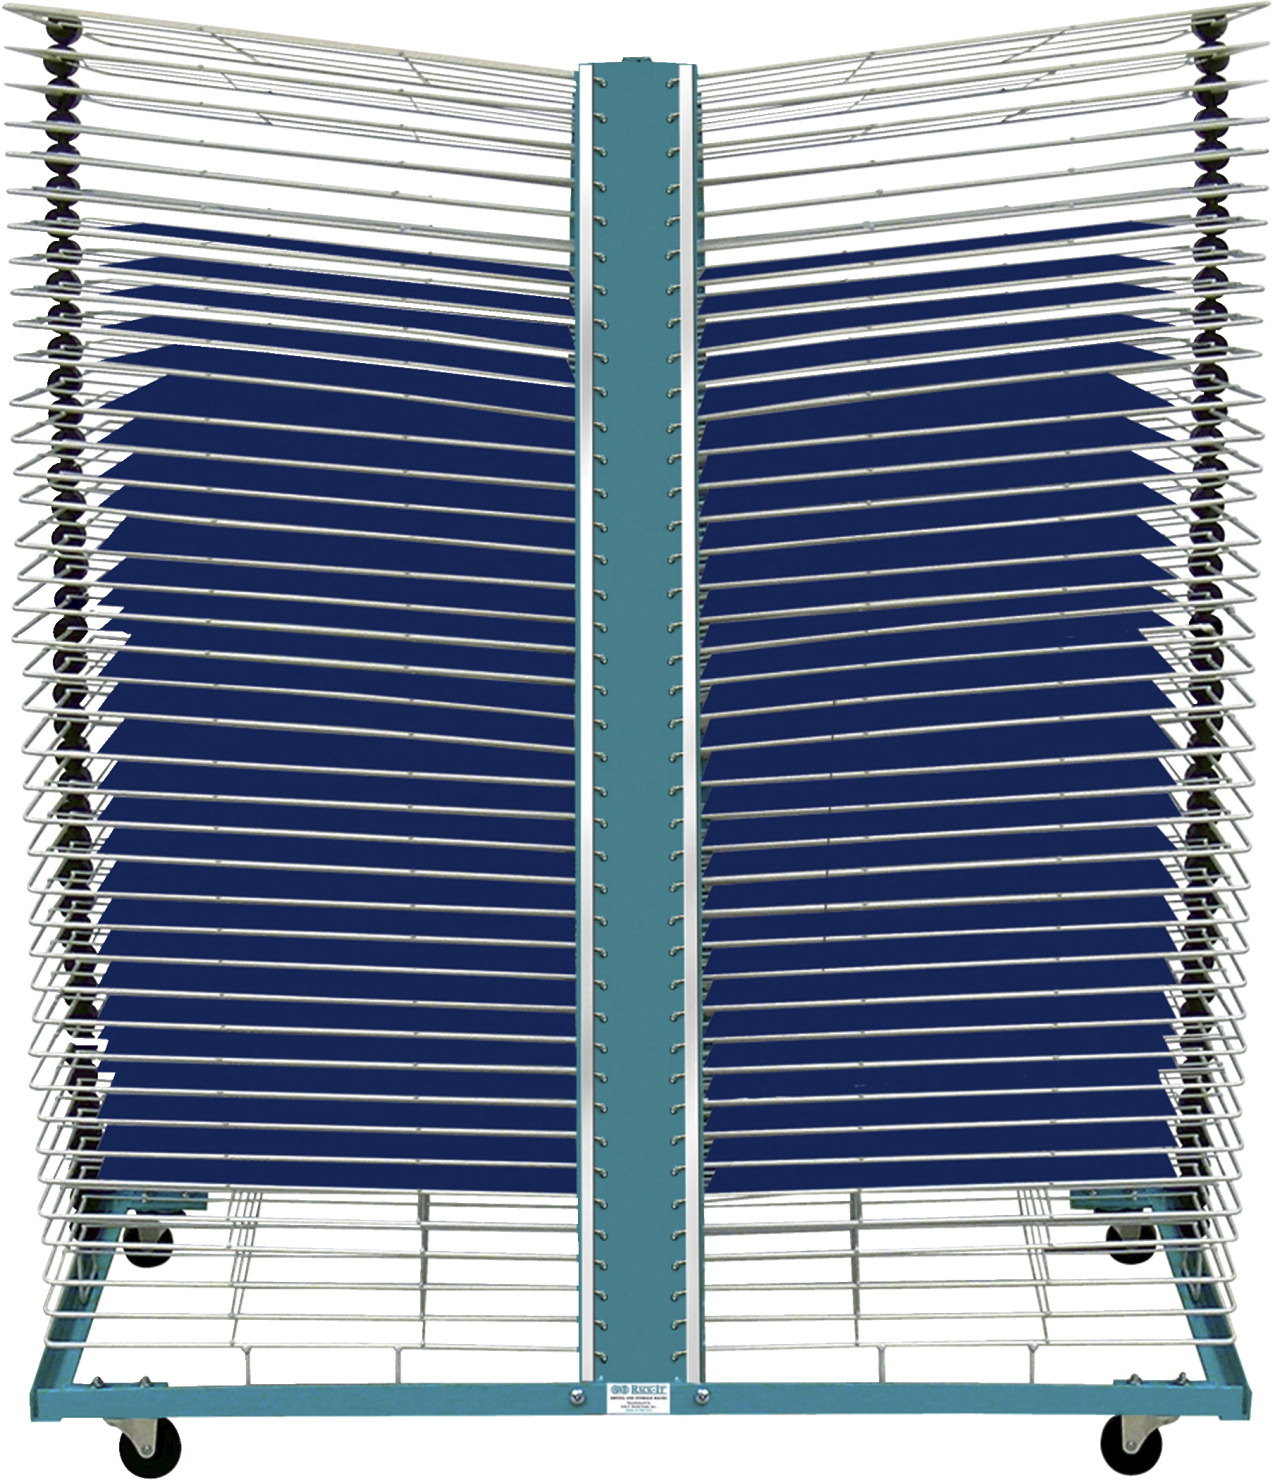 Sax All-Steel Double Sided Wire Drying Rack, 17 x 20 x 30 inches ...